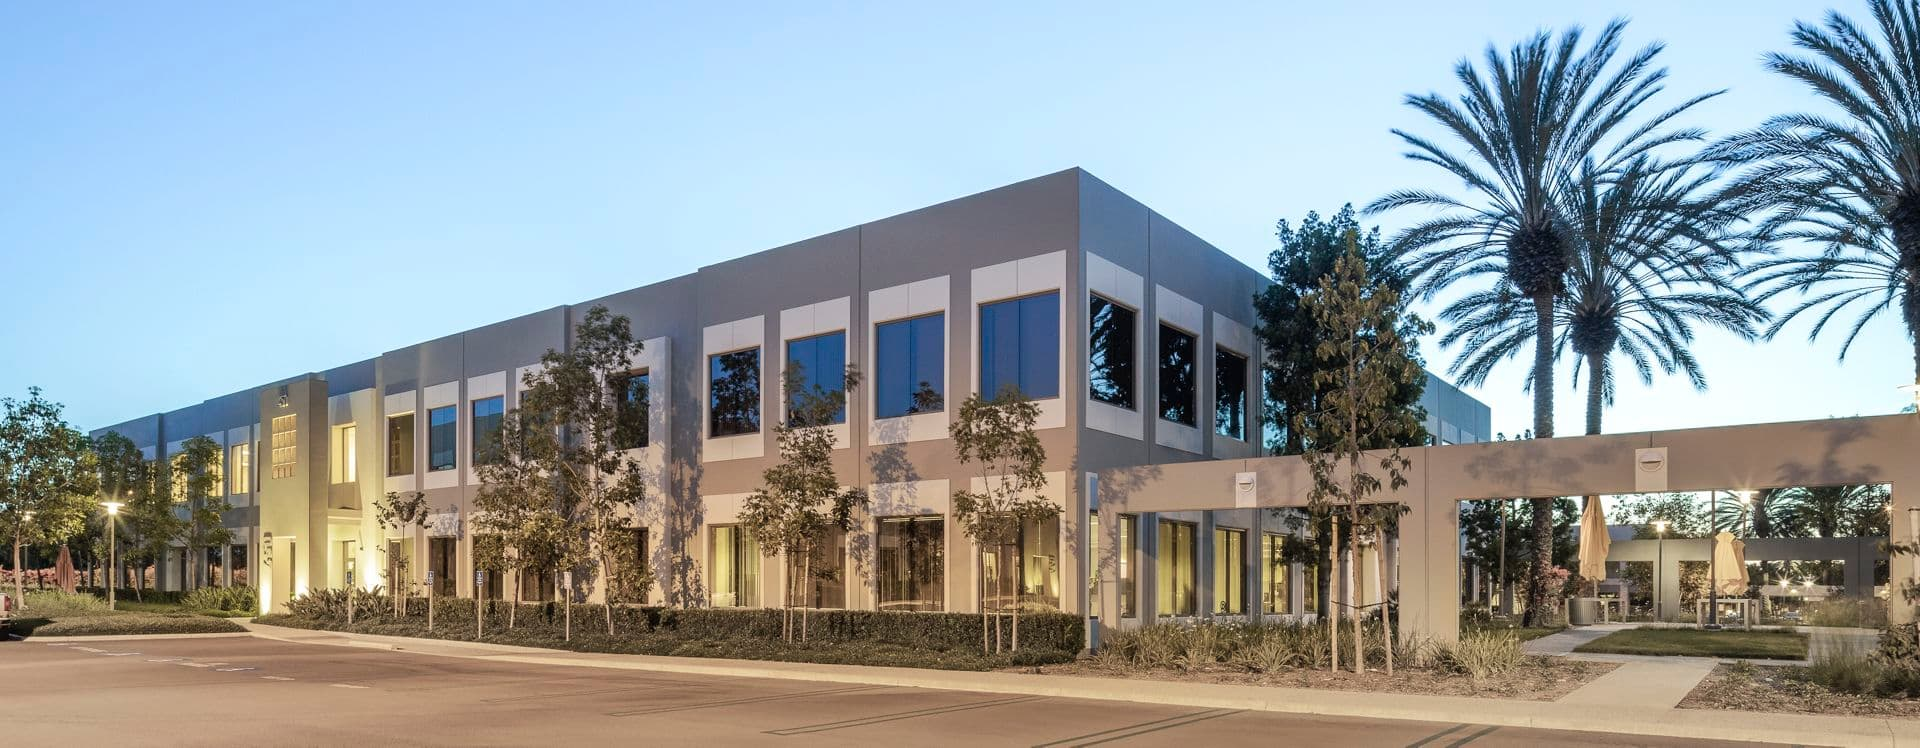 Exterior view of 450 Exchange at Market Place Center in Irvine, CA.